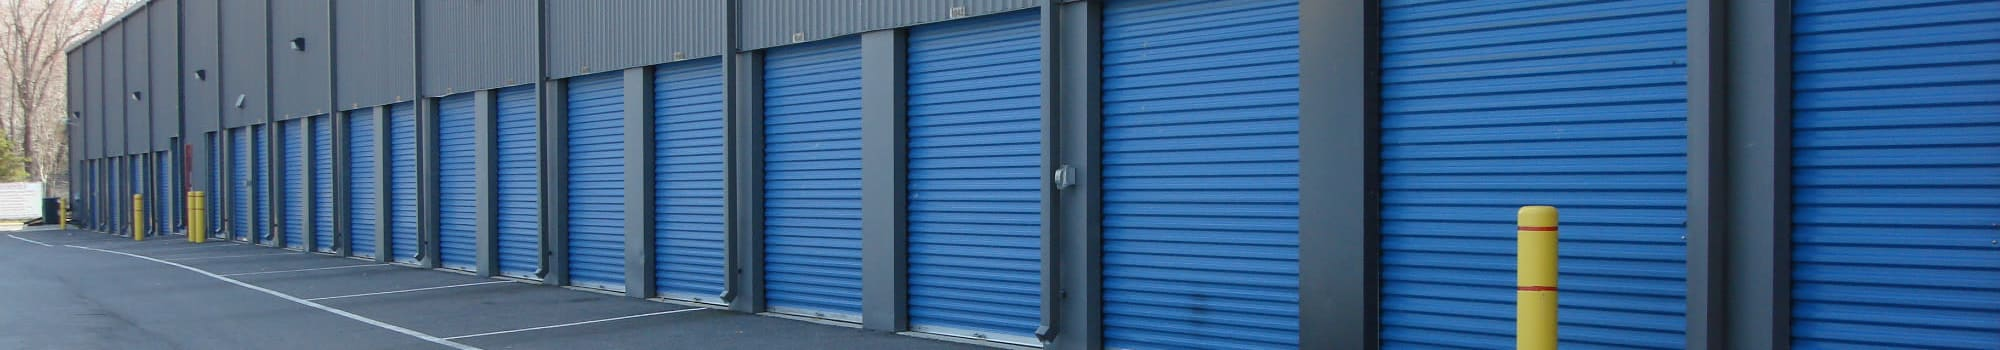 Odenton Self Storage offering climate-controlled storage